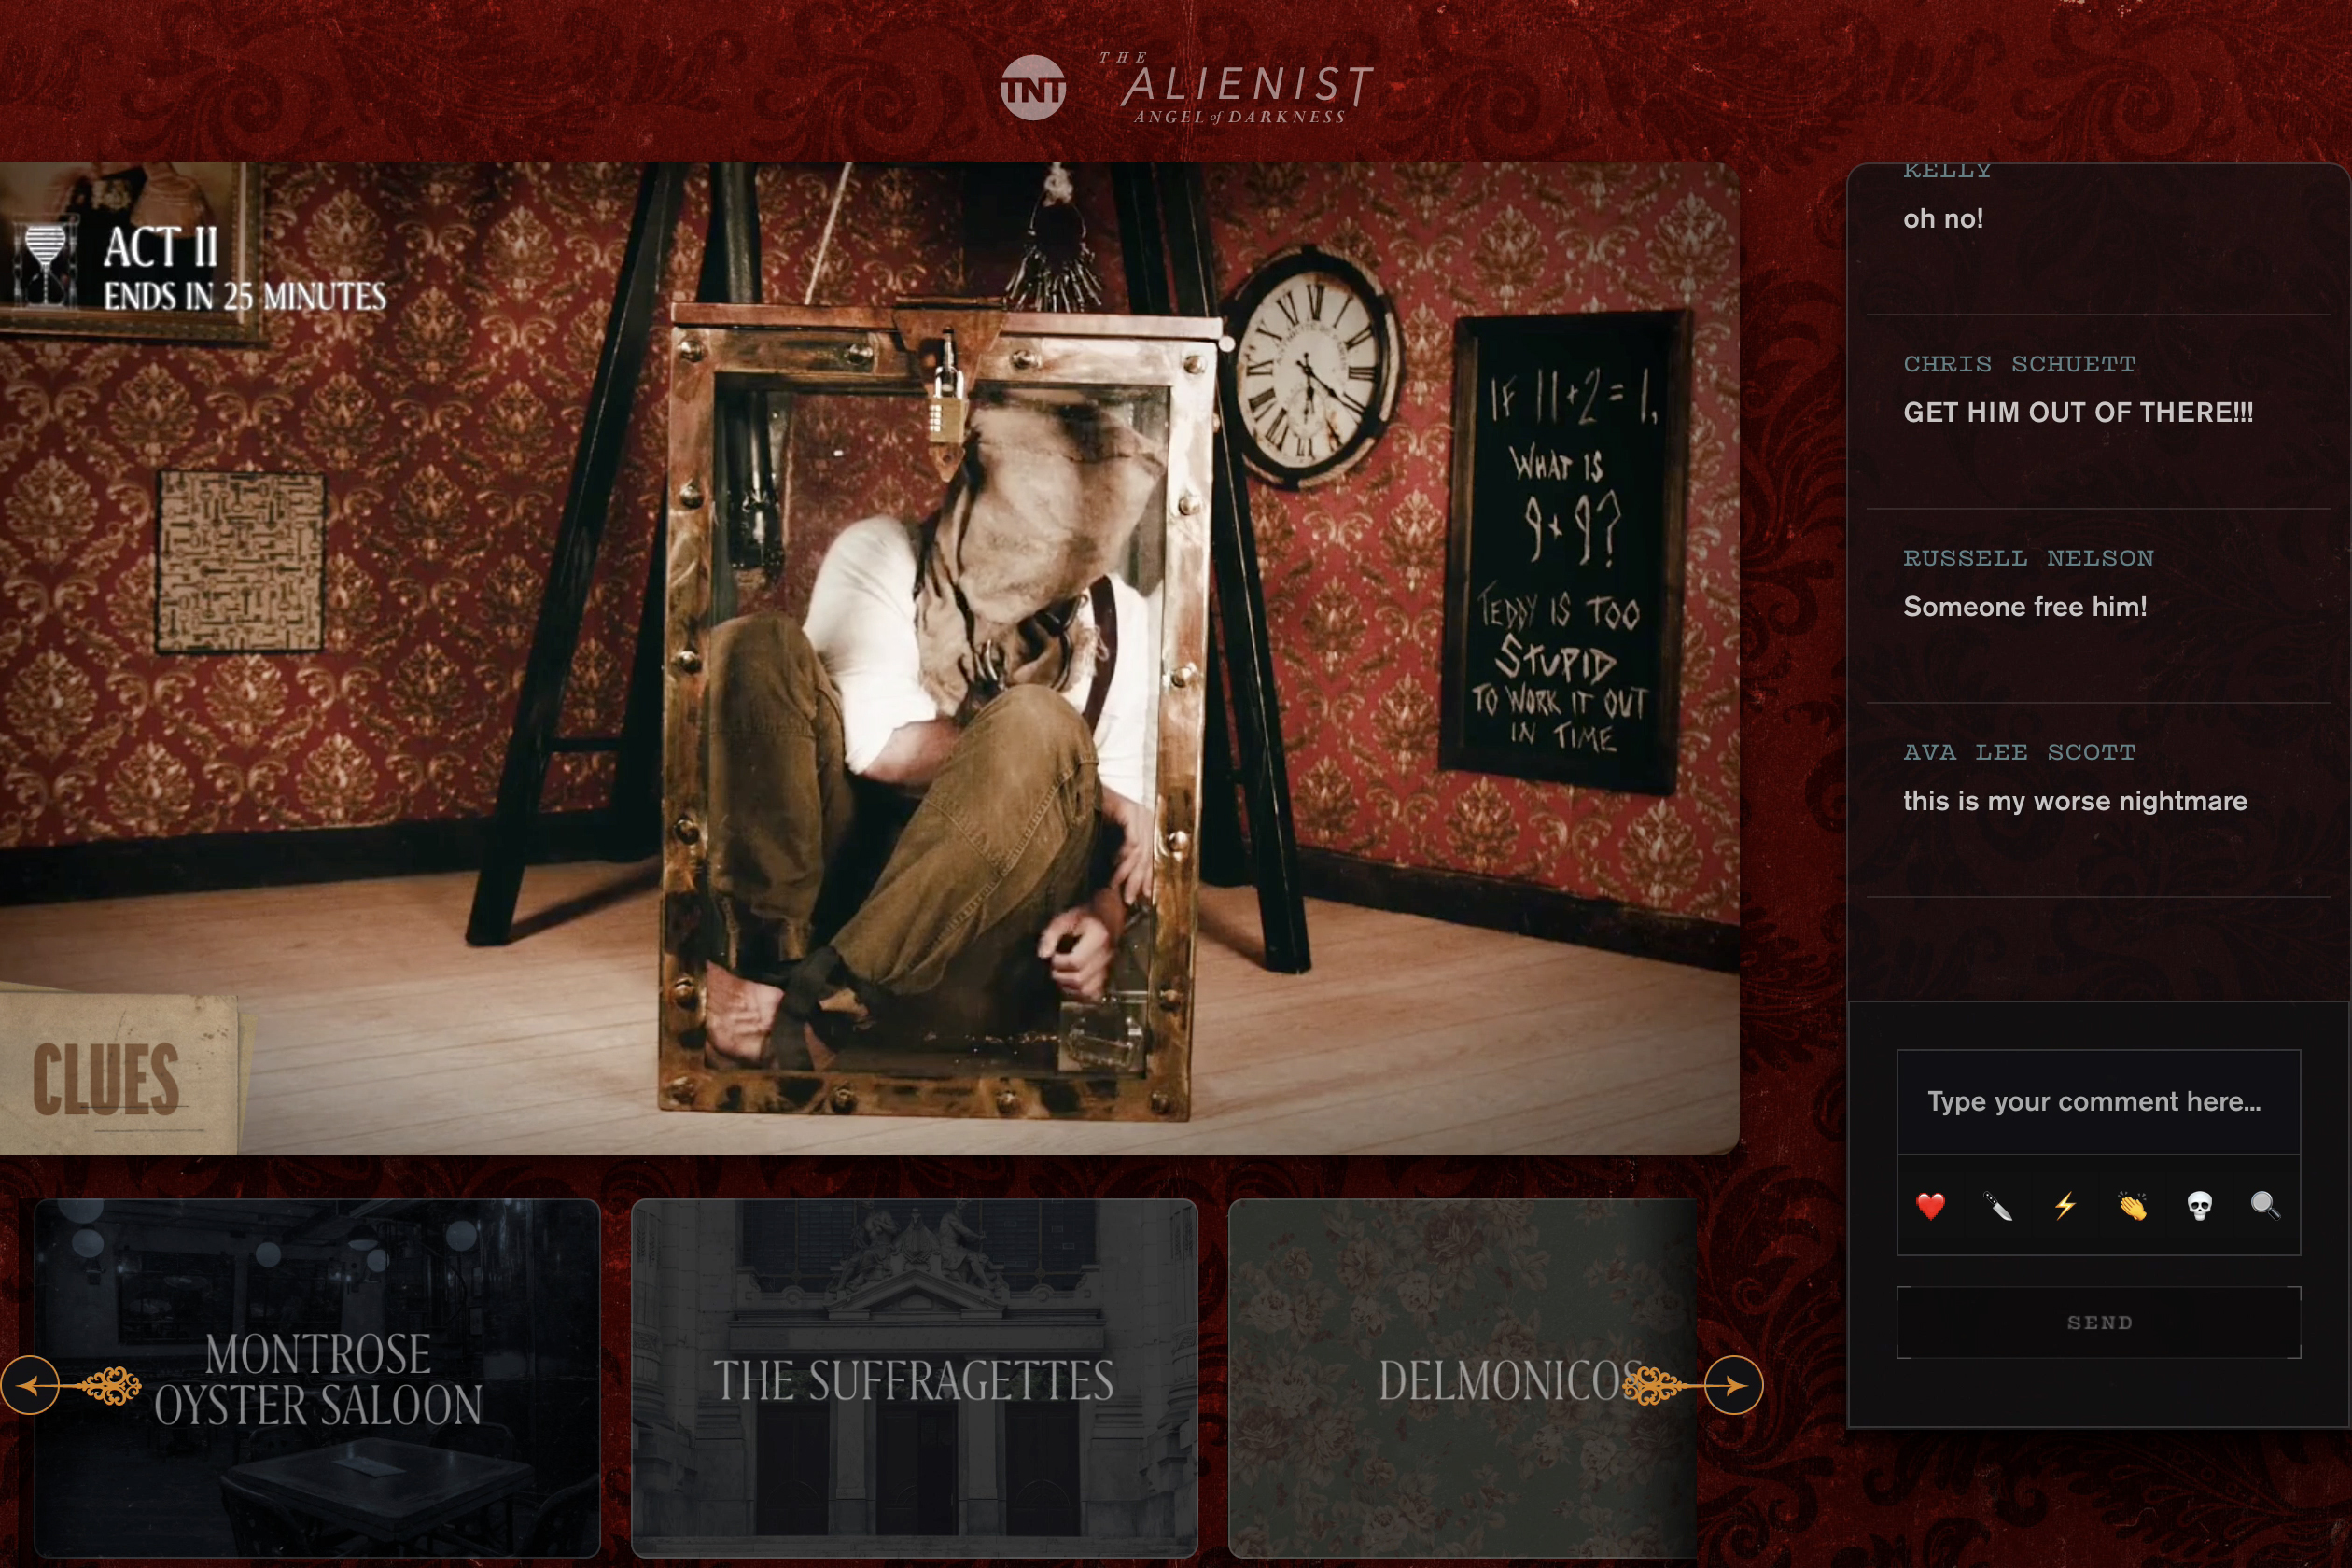 The Alienist interactive murder mystery